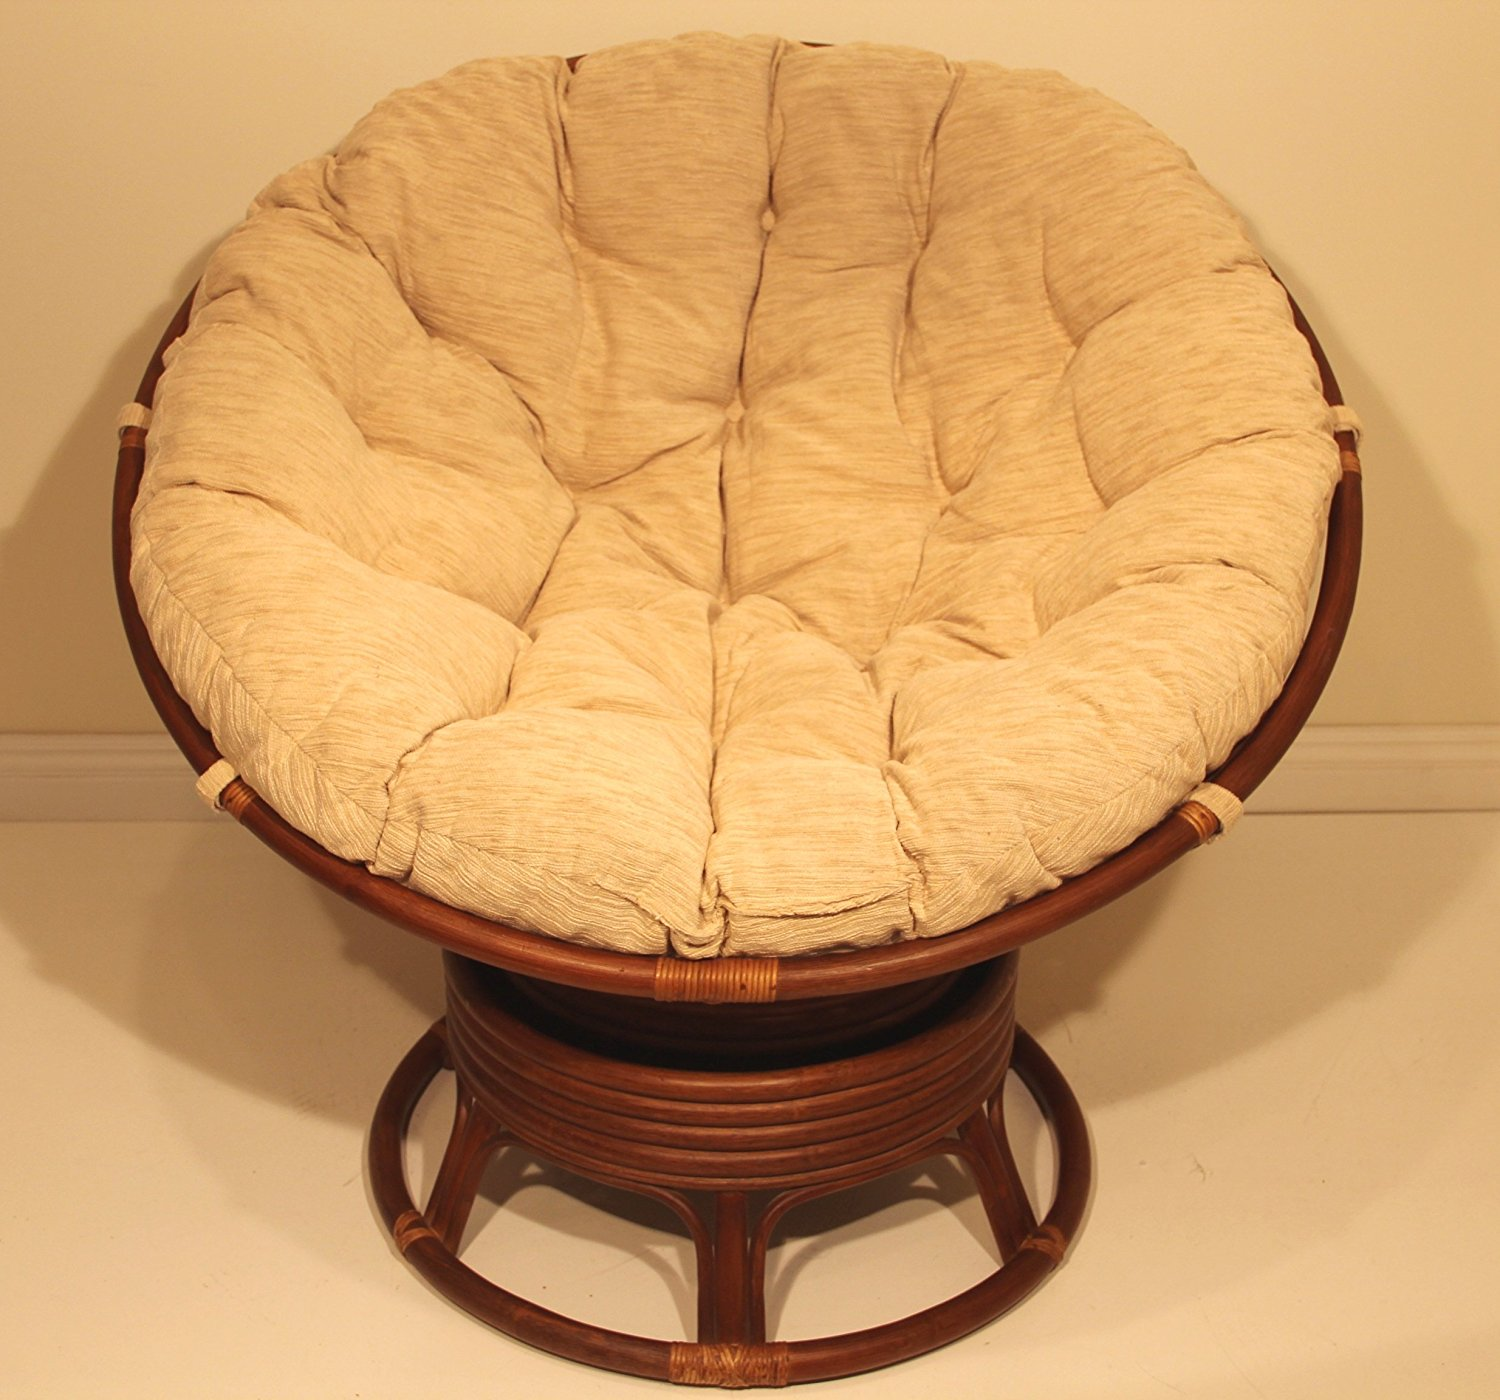 Wicker Swivel Rocker Chair | Rattan Swivel Rocker | Wicker Recliner Chair